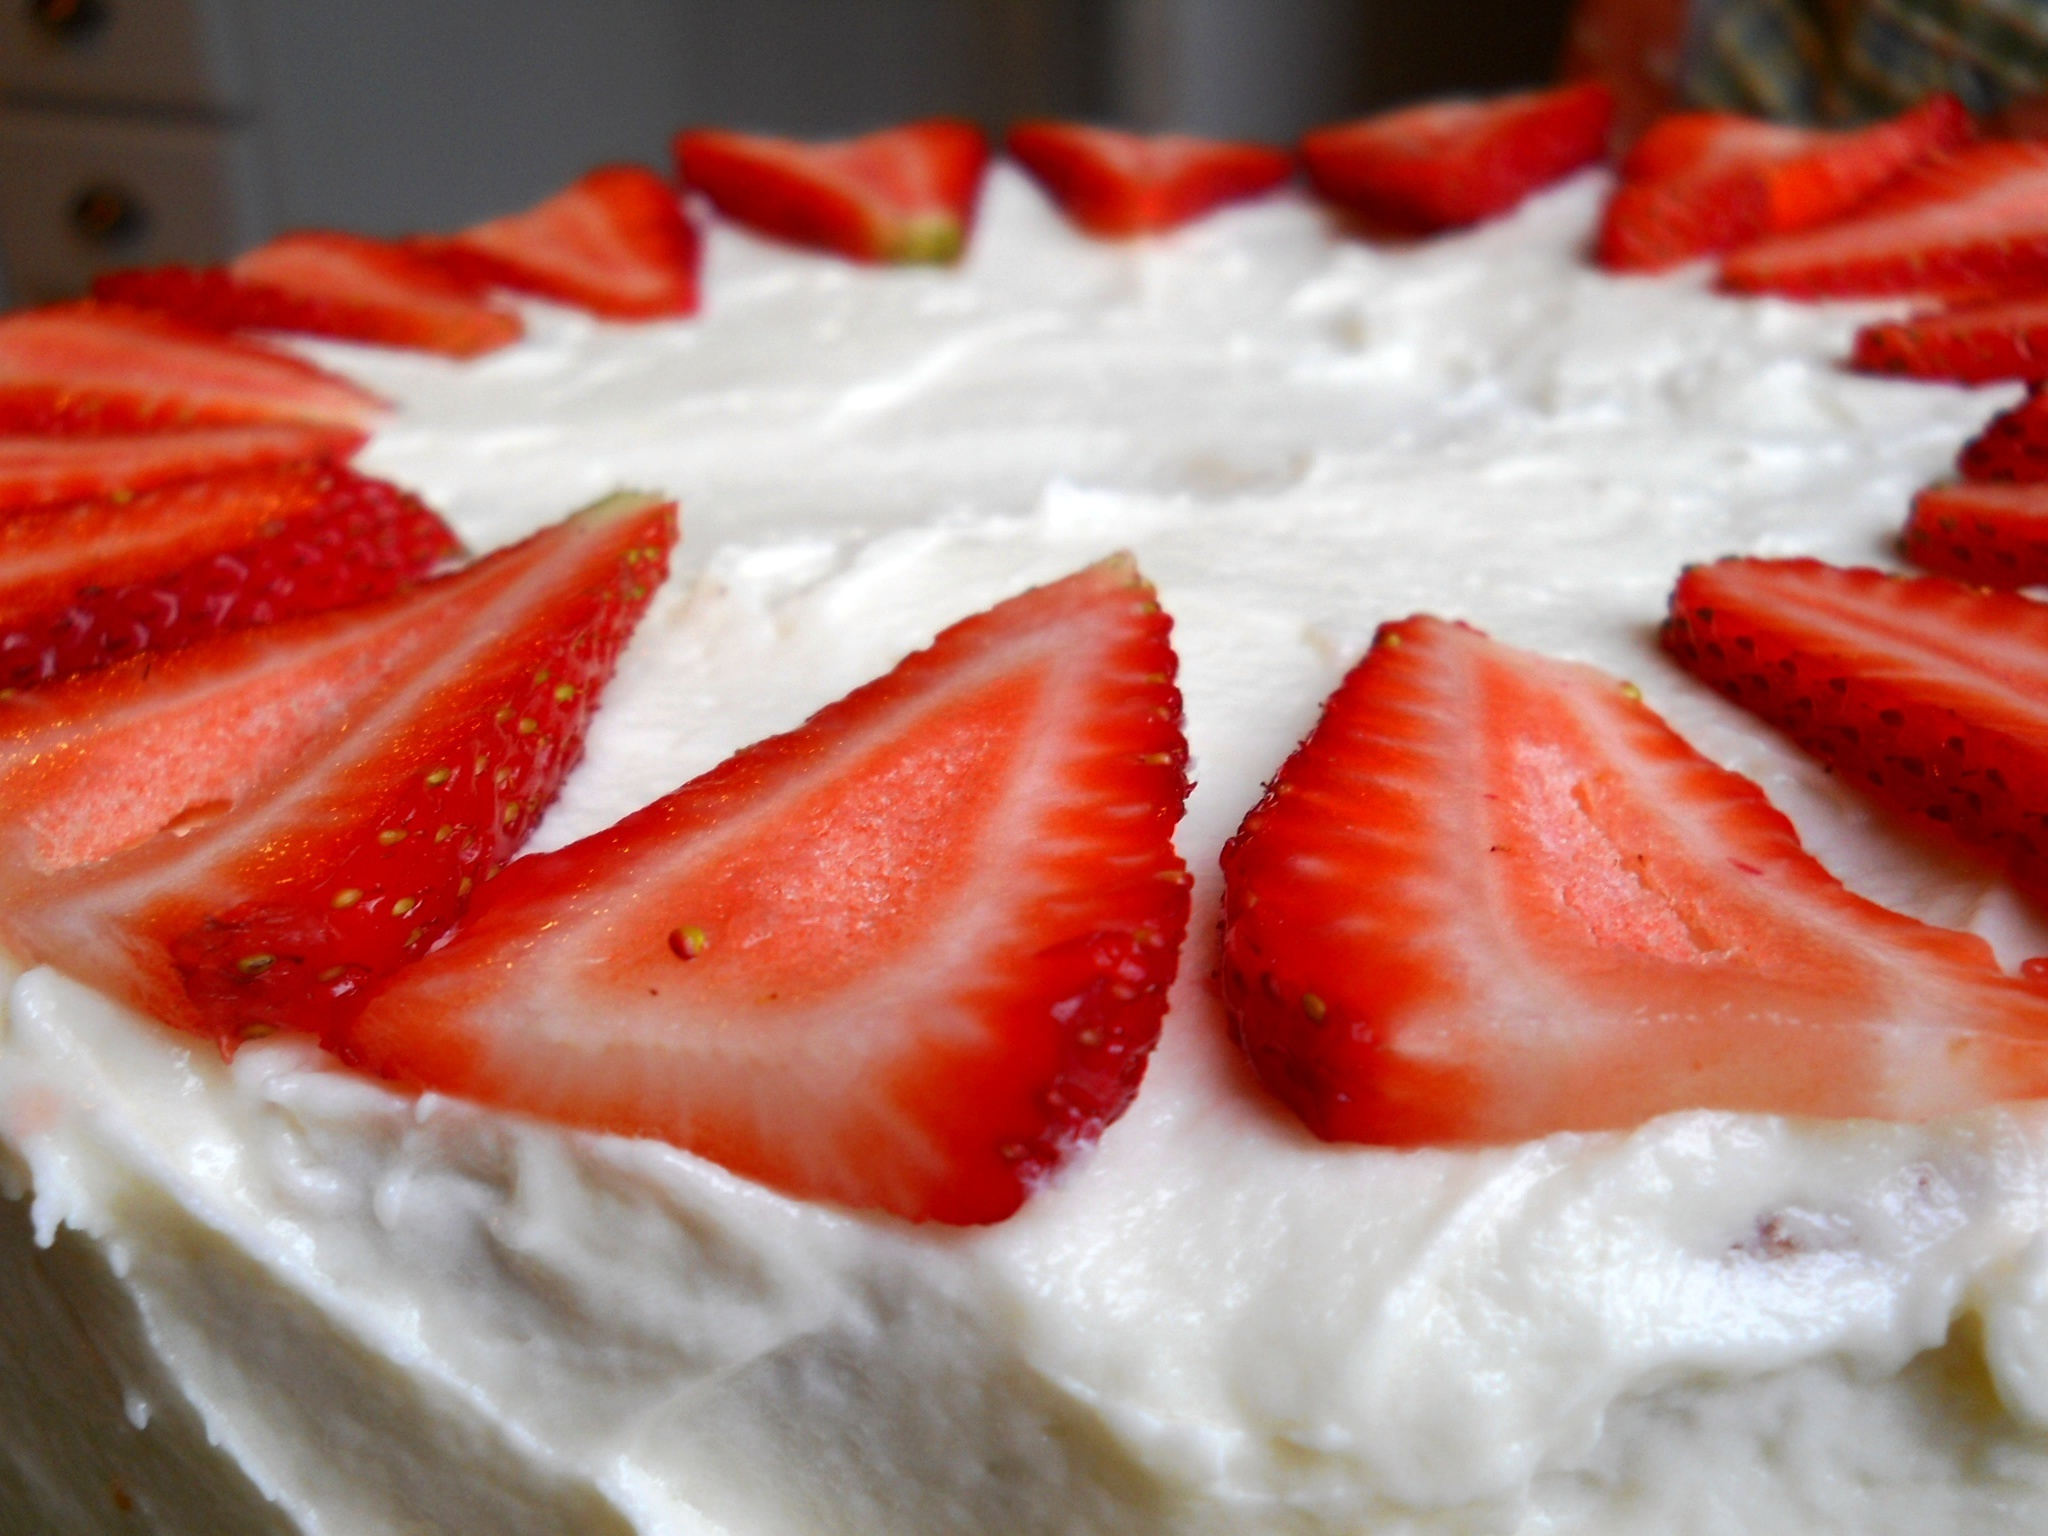 Summertime Strawberry Cake with Cream Cheese Frosting